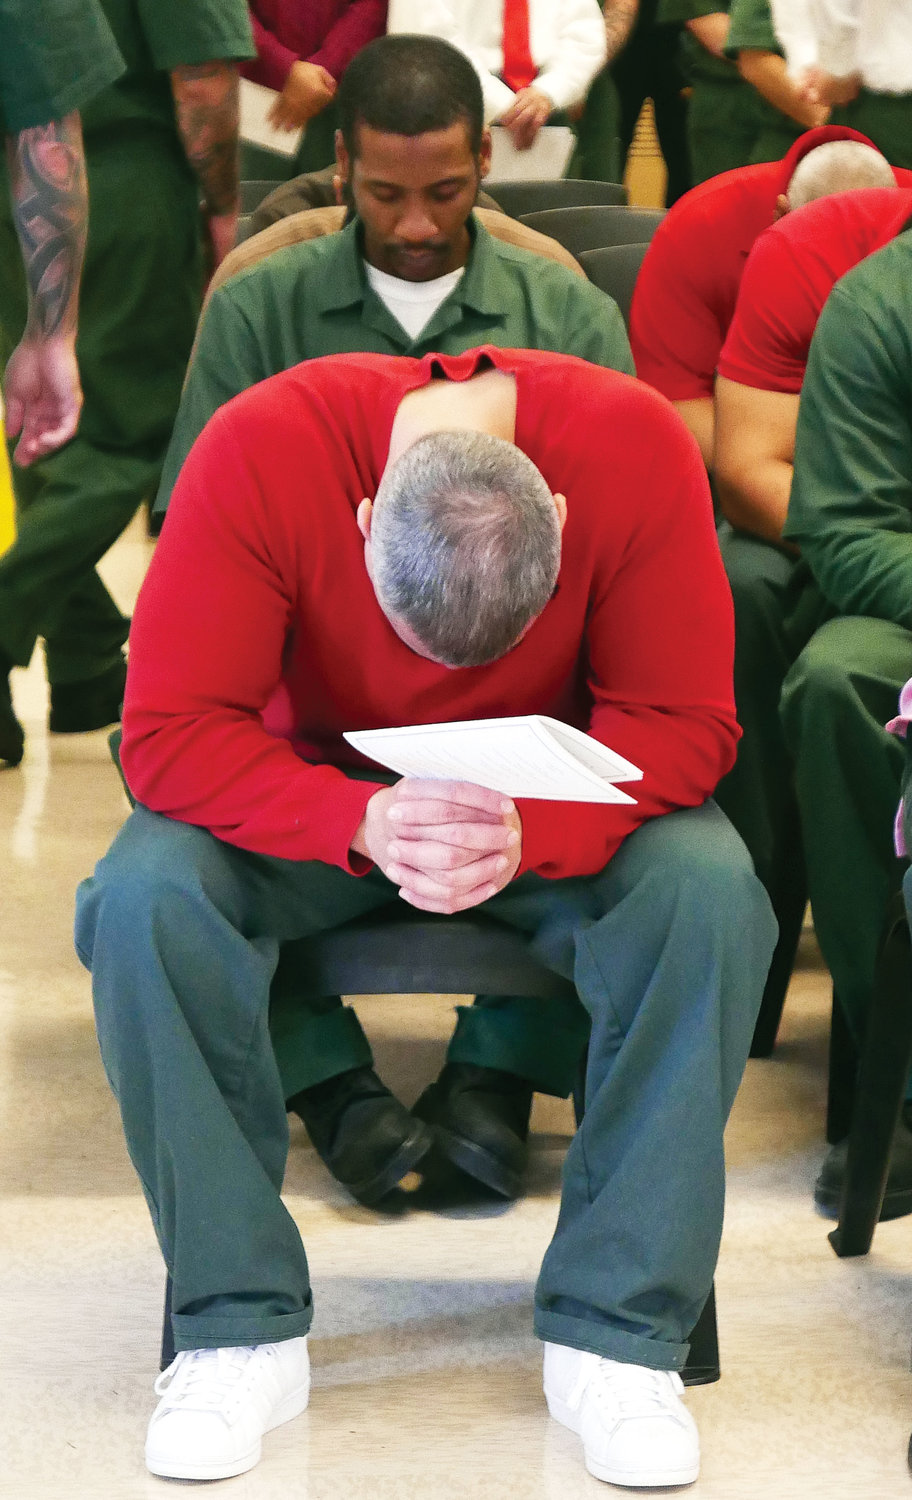 Inmates bow their heads in prayer during Mass.